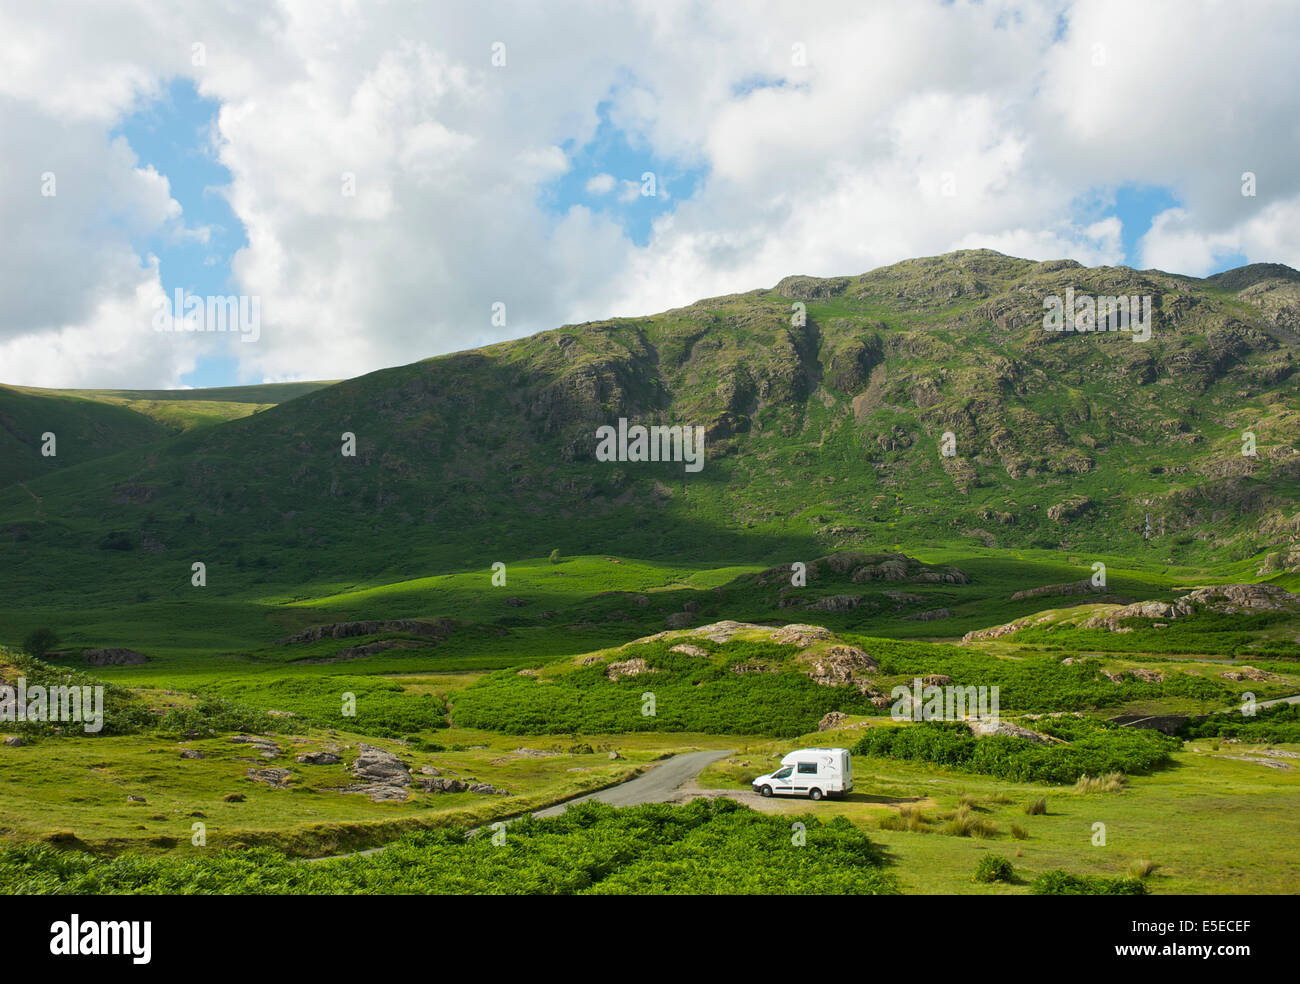 Romahome R25 motorhome parked in Wasdale, Lake District National Park, Cumbria, England UK - Stock Image